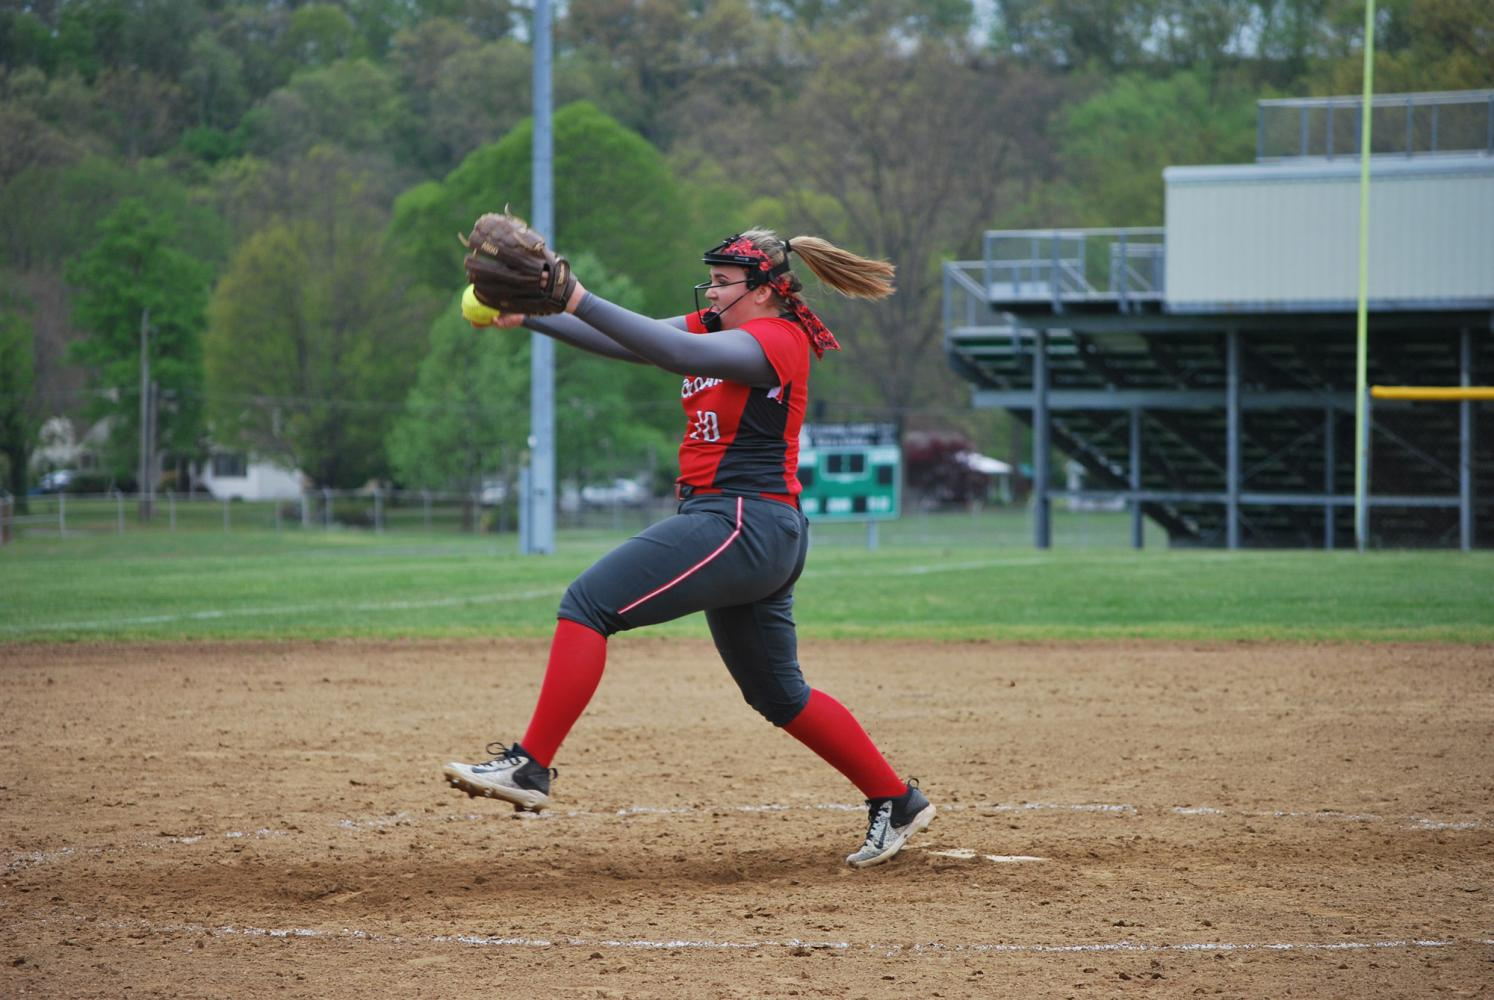 Times' Athlete of the Week of May 13 Madison Slowinski pitches at the game at Riverside on May 4.